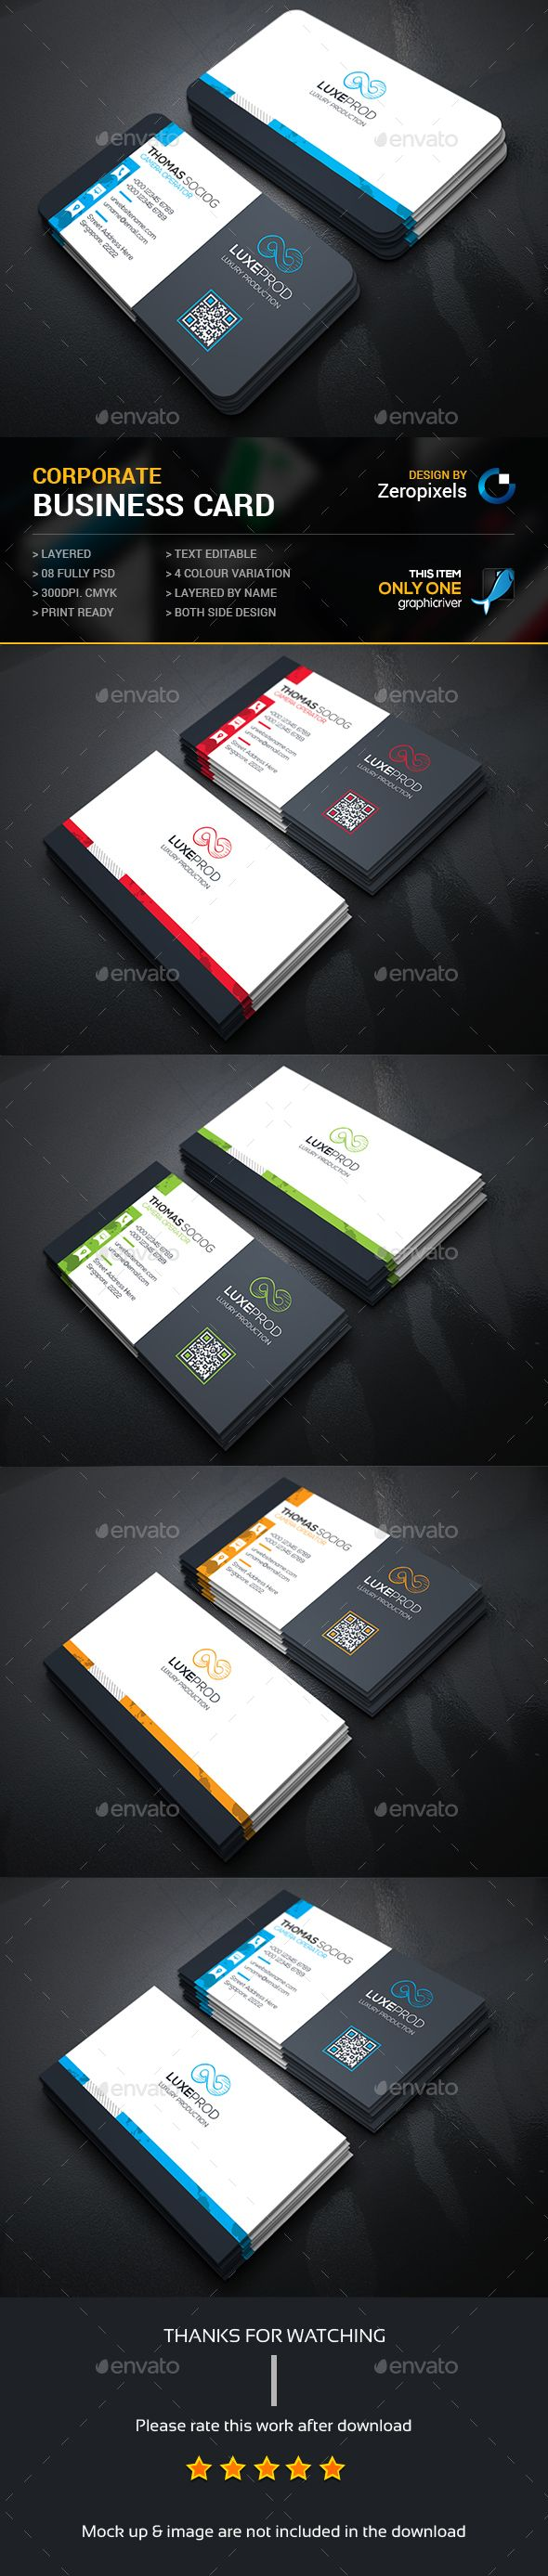 35 best Laser Engraved Business Cards images on Pinterest ...